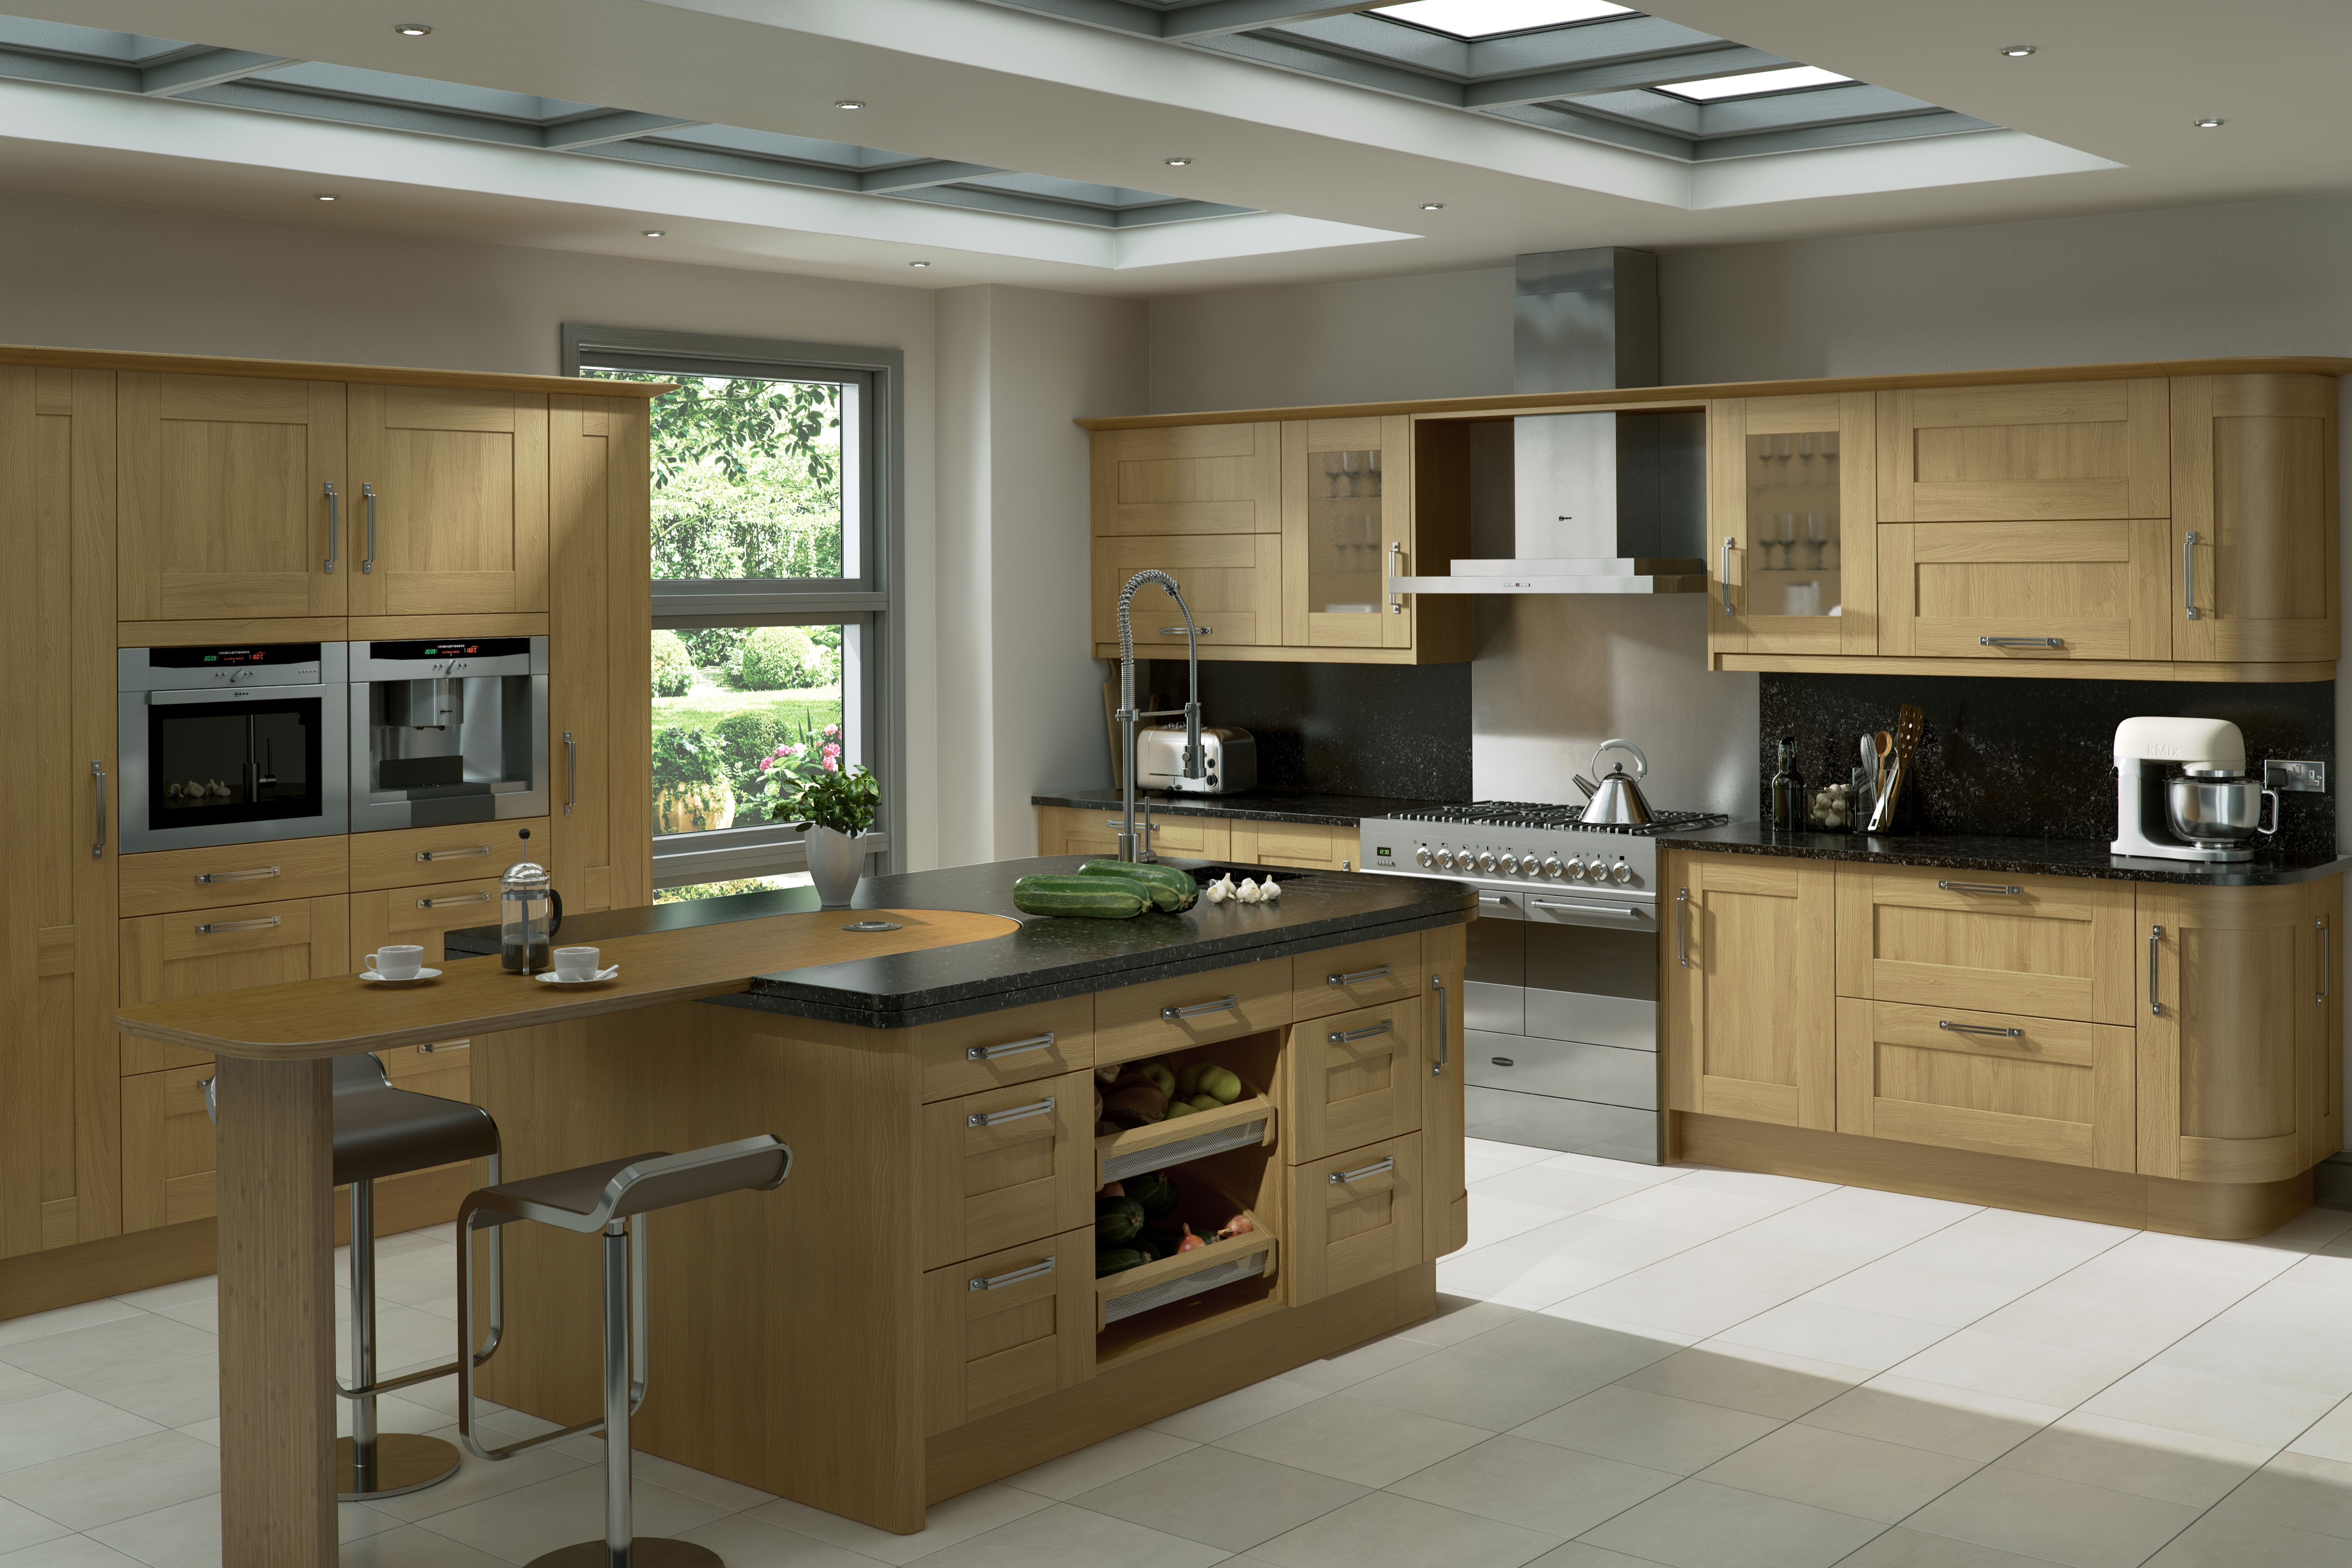 A Innova Linwood Kitchen With Simple Shaker Styling Http Innova Kitchens C